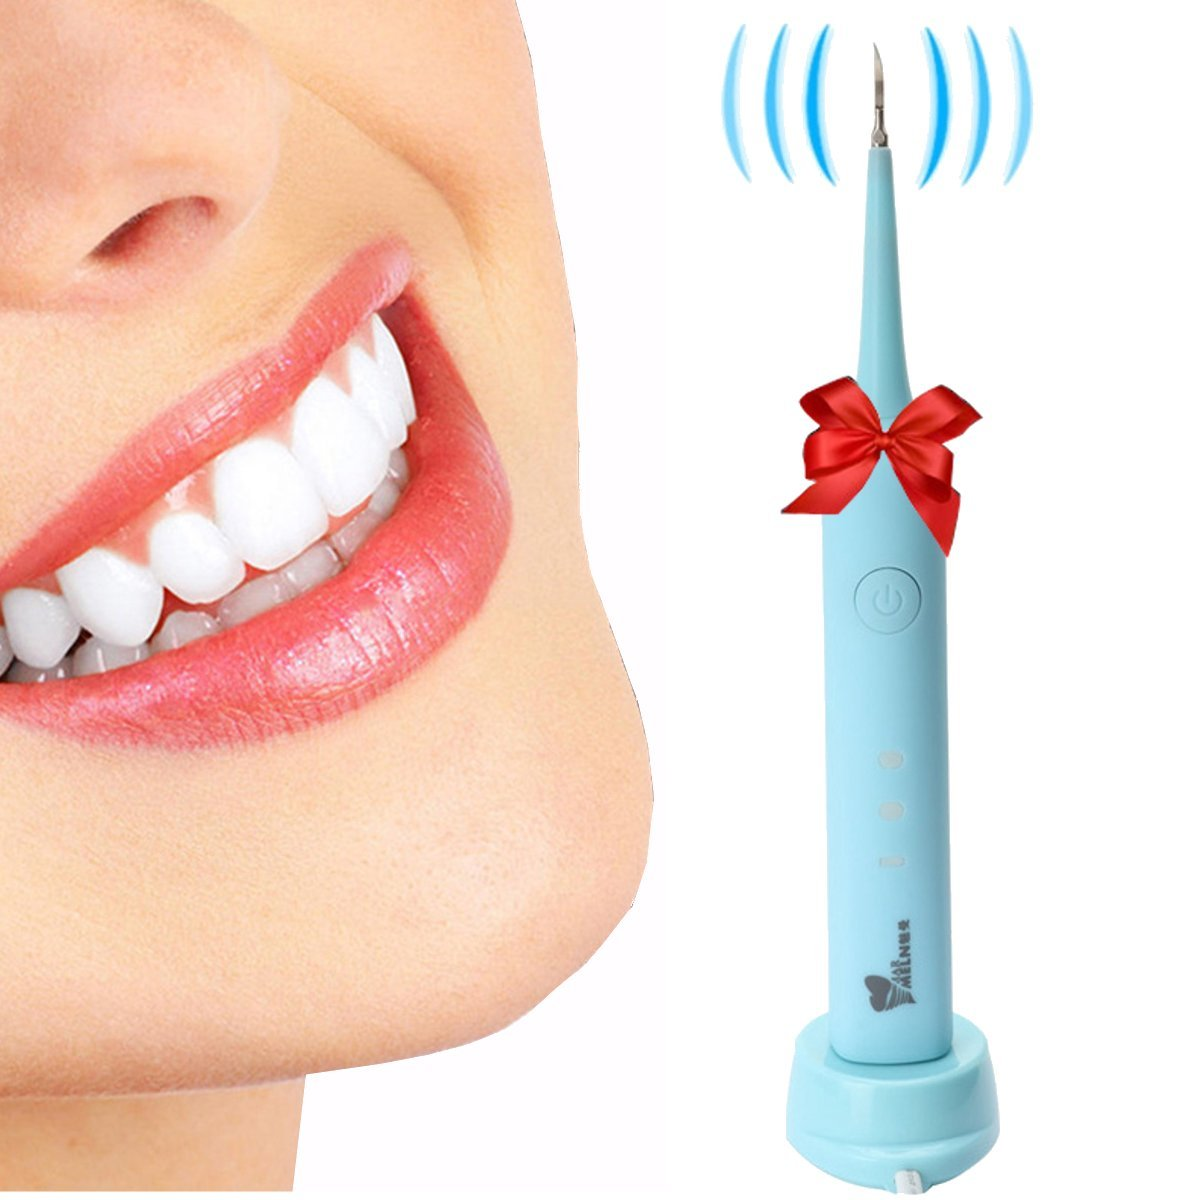 Teeth Stain Removal, Y.F.M Electric Dental Calculus Remover Tooth Stains Tools 3 Modes Portable & Cordless Ideal for Kids and Braces Dentist Recommended